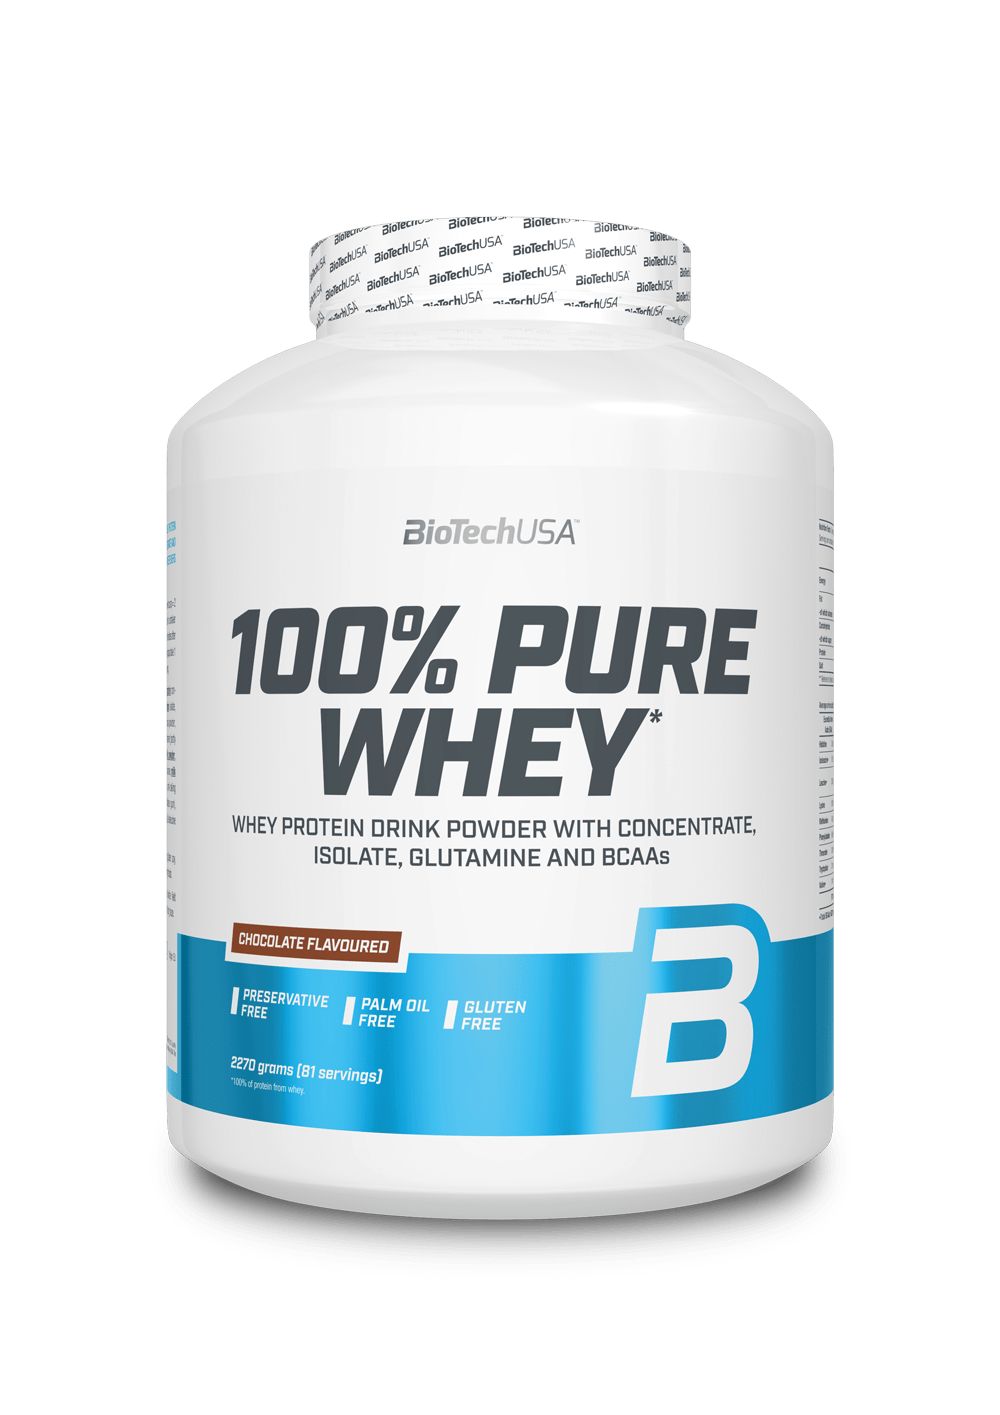 images_feherje_100_pure_whey_100purewhey_chocolate_2270g_8l.png